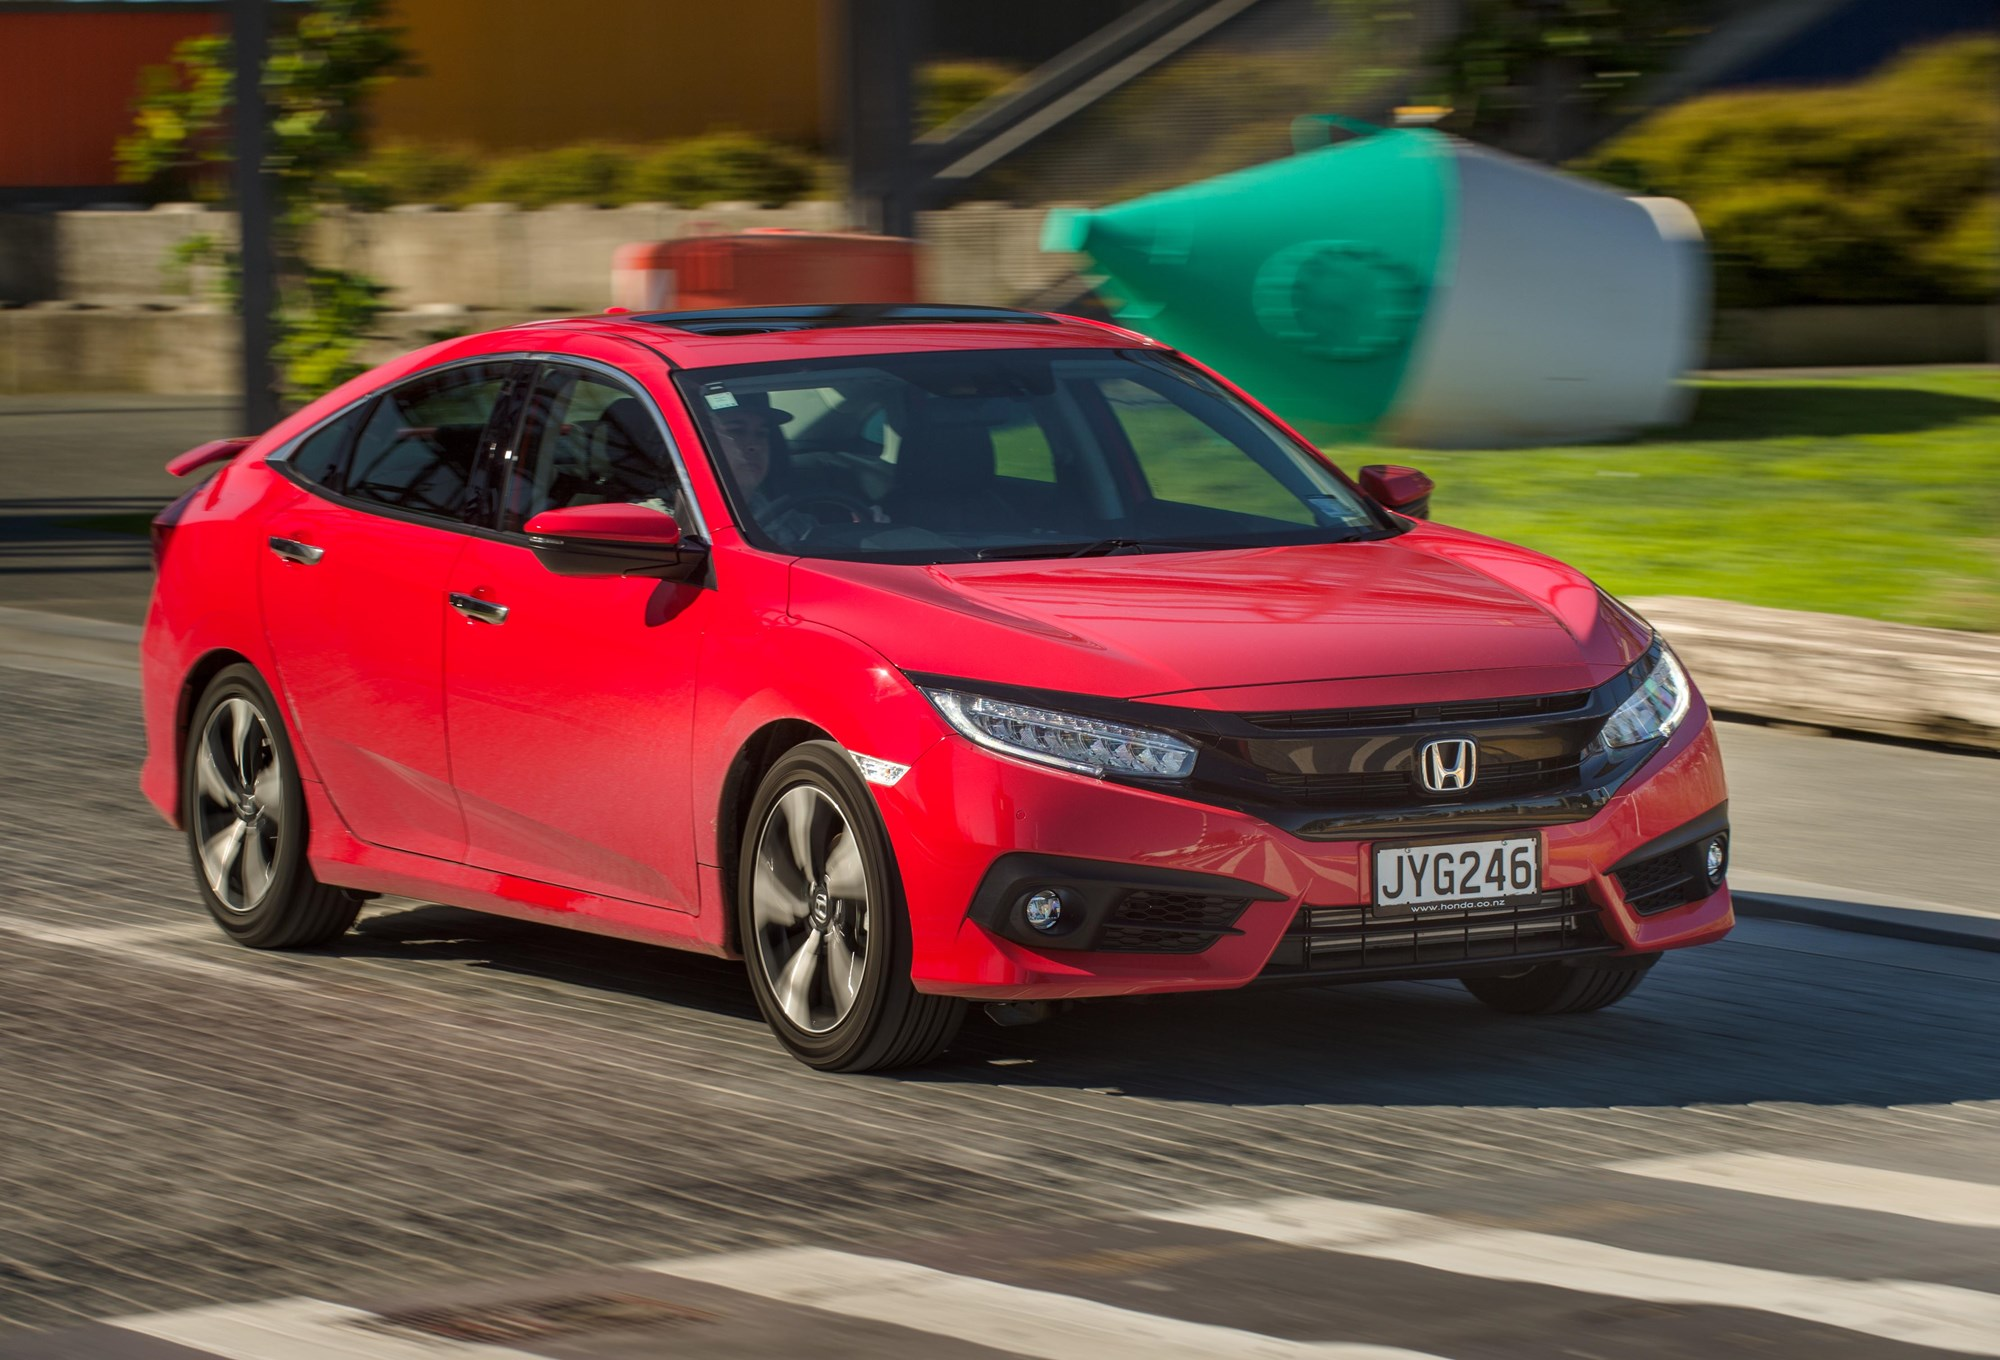 THE NEW HONDA CIVIC IS LIGHT YEARS FROM FIRST